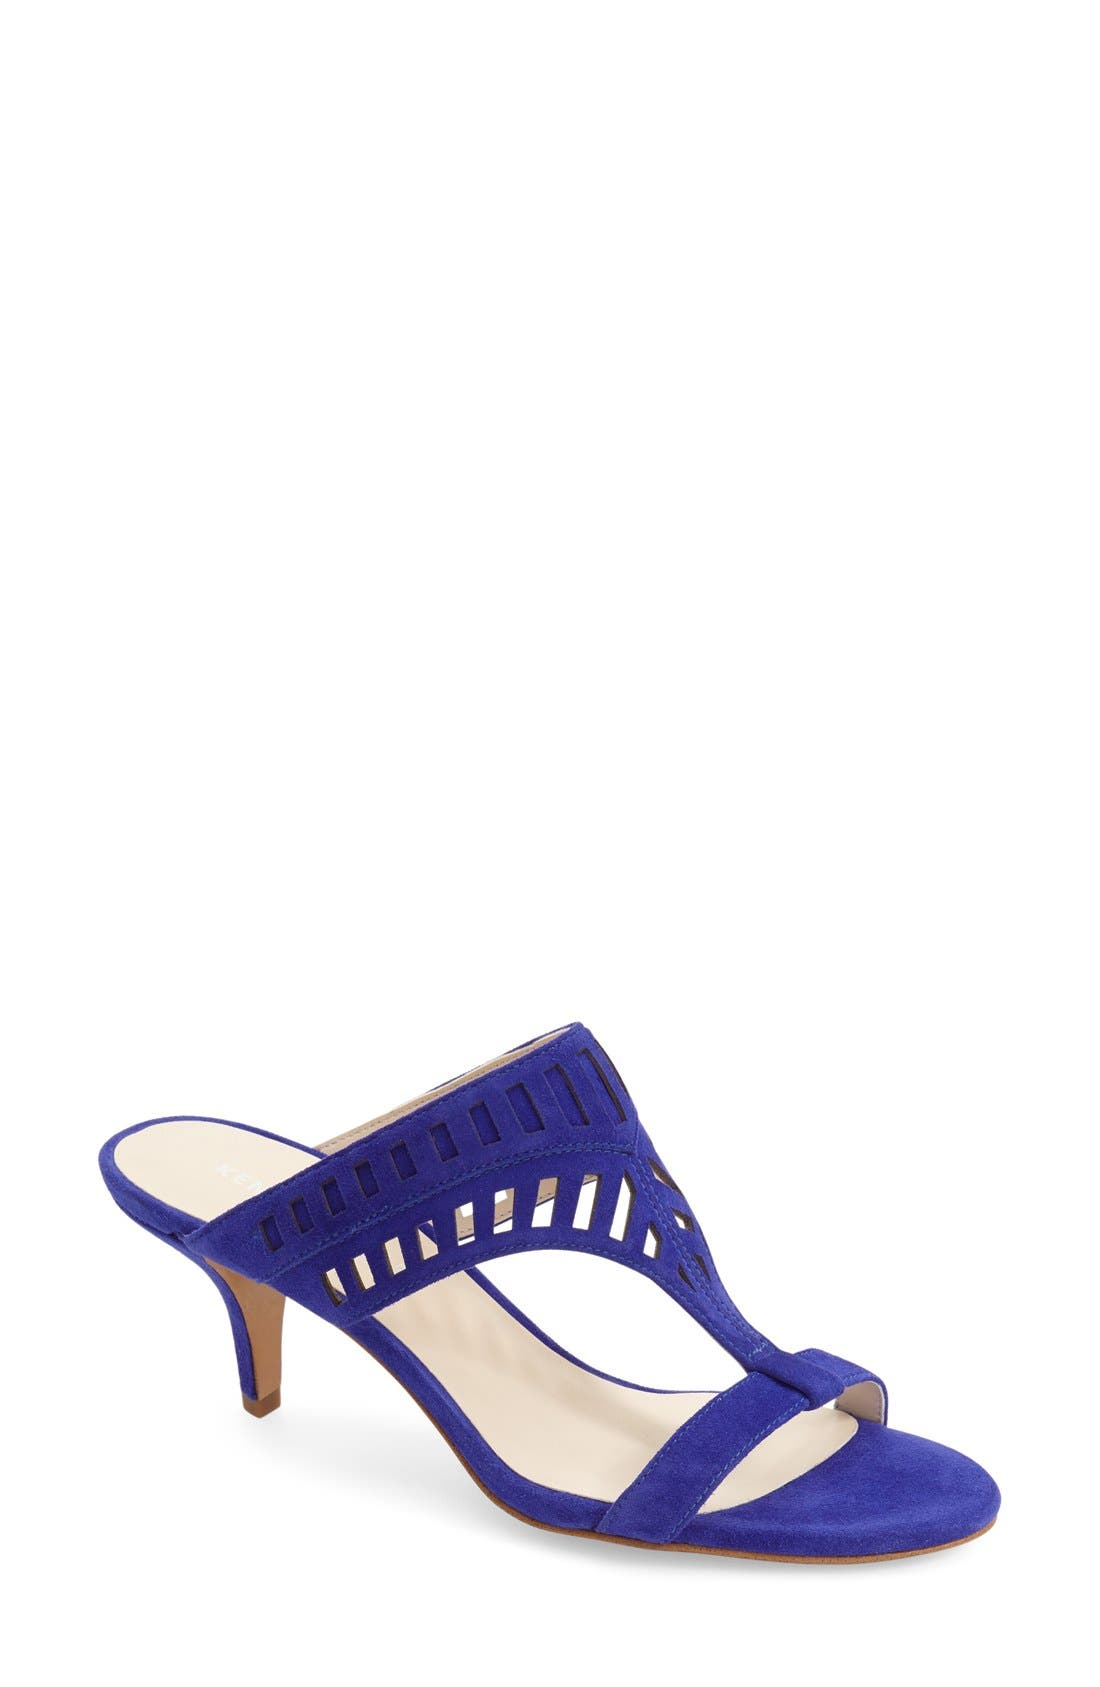 Main Image - Kenneth Cole New York 'Aria' Sandal (Women)